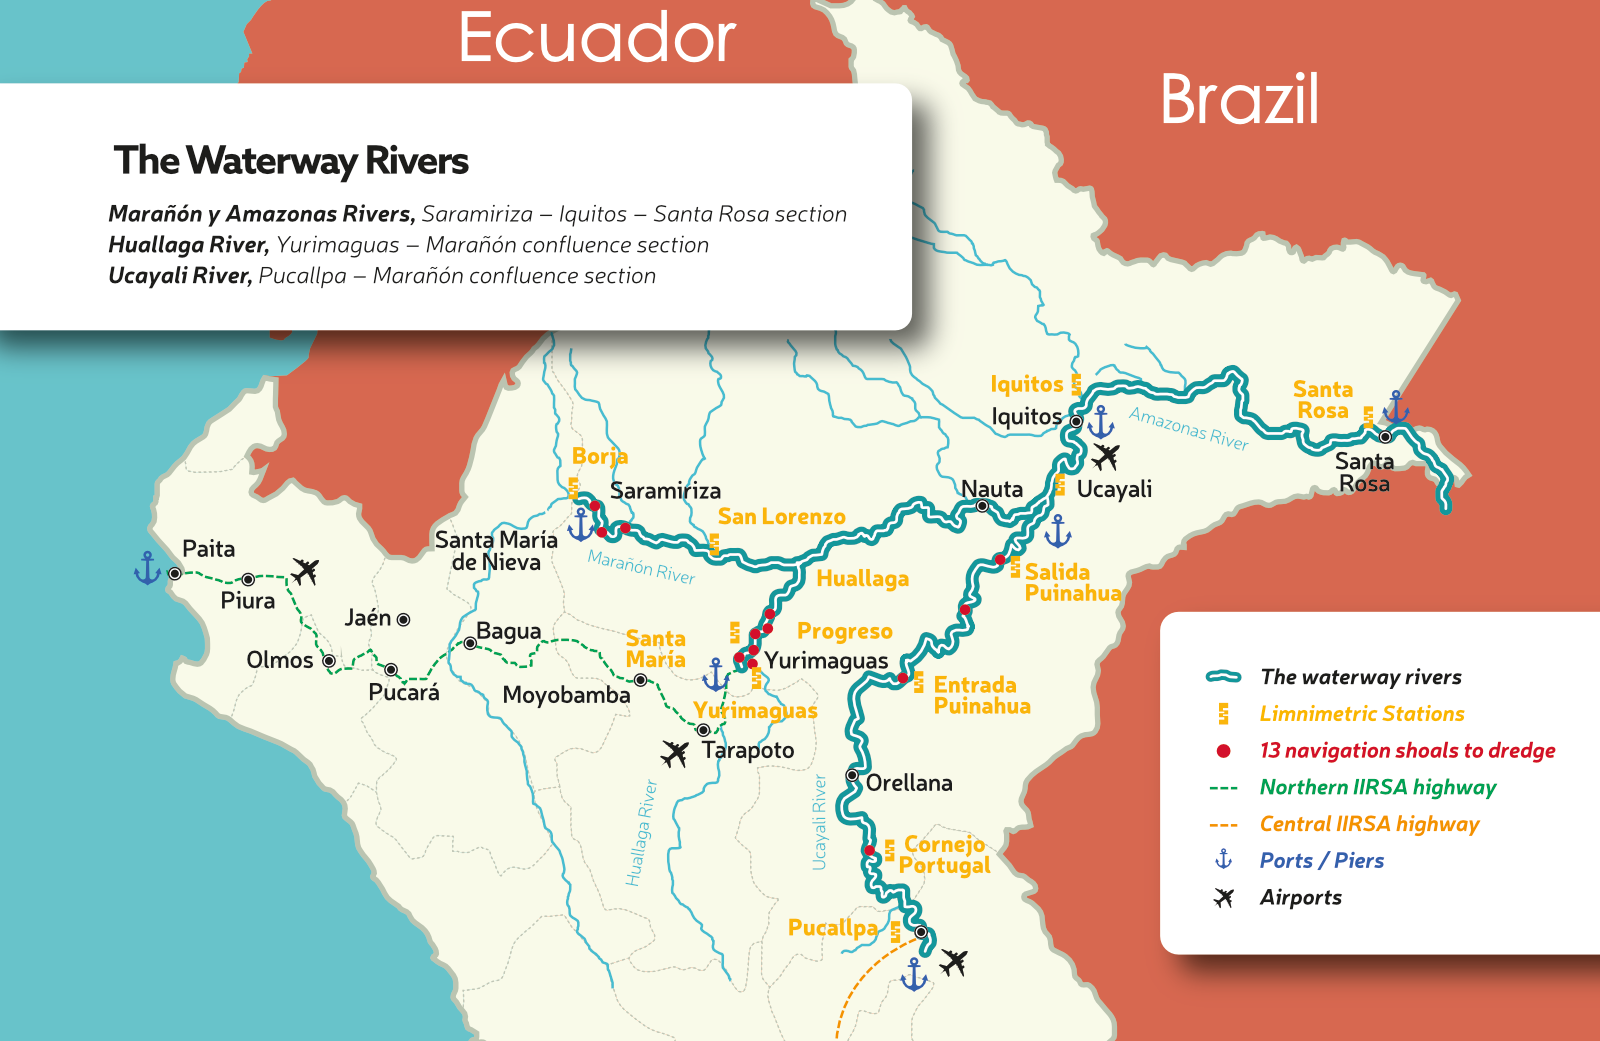 The Waterway Rivers in Amazon in Peru